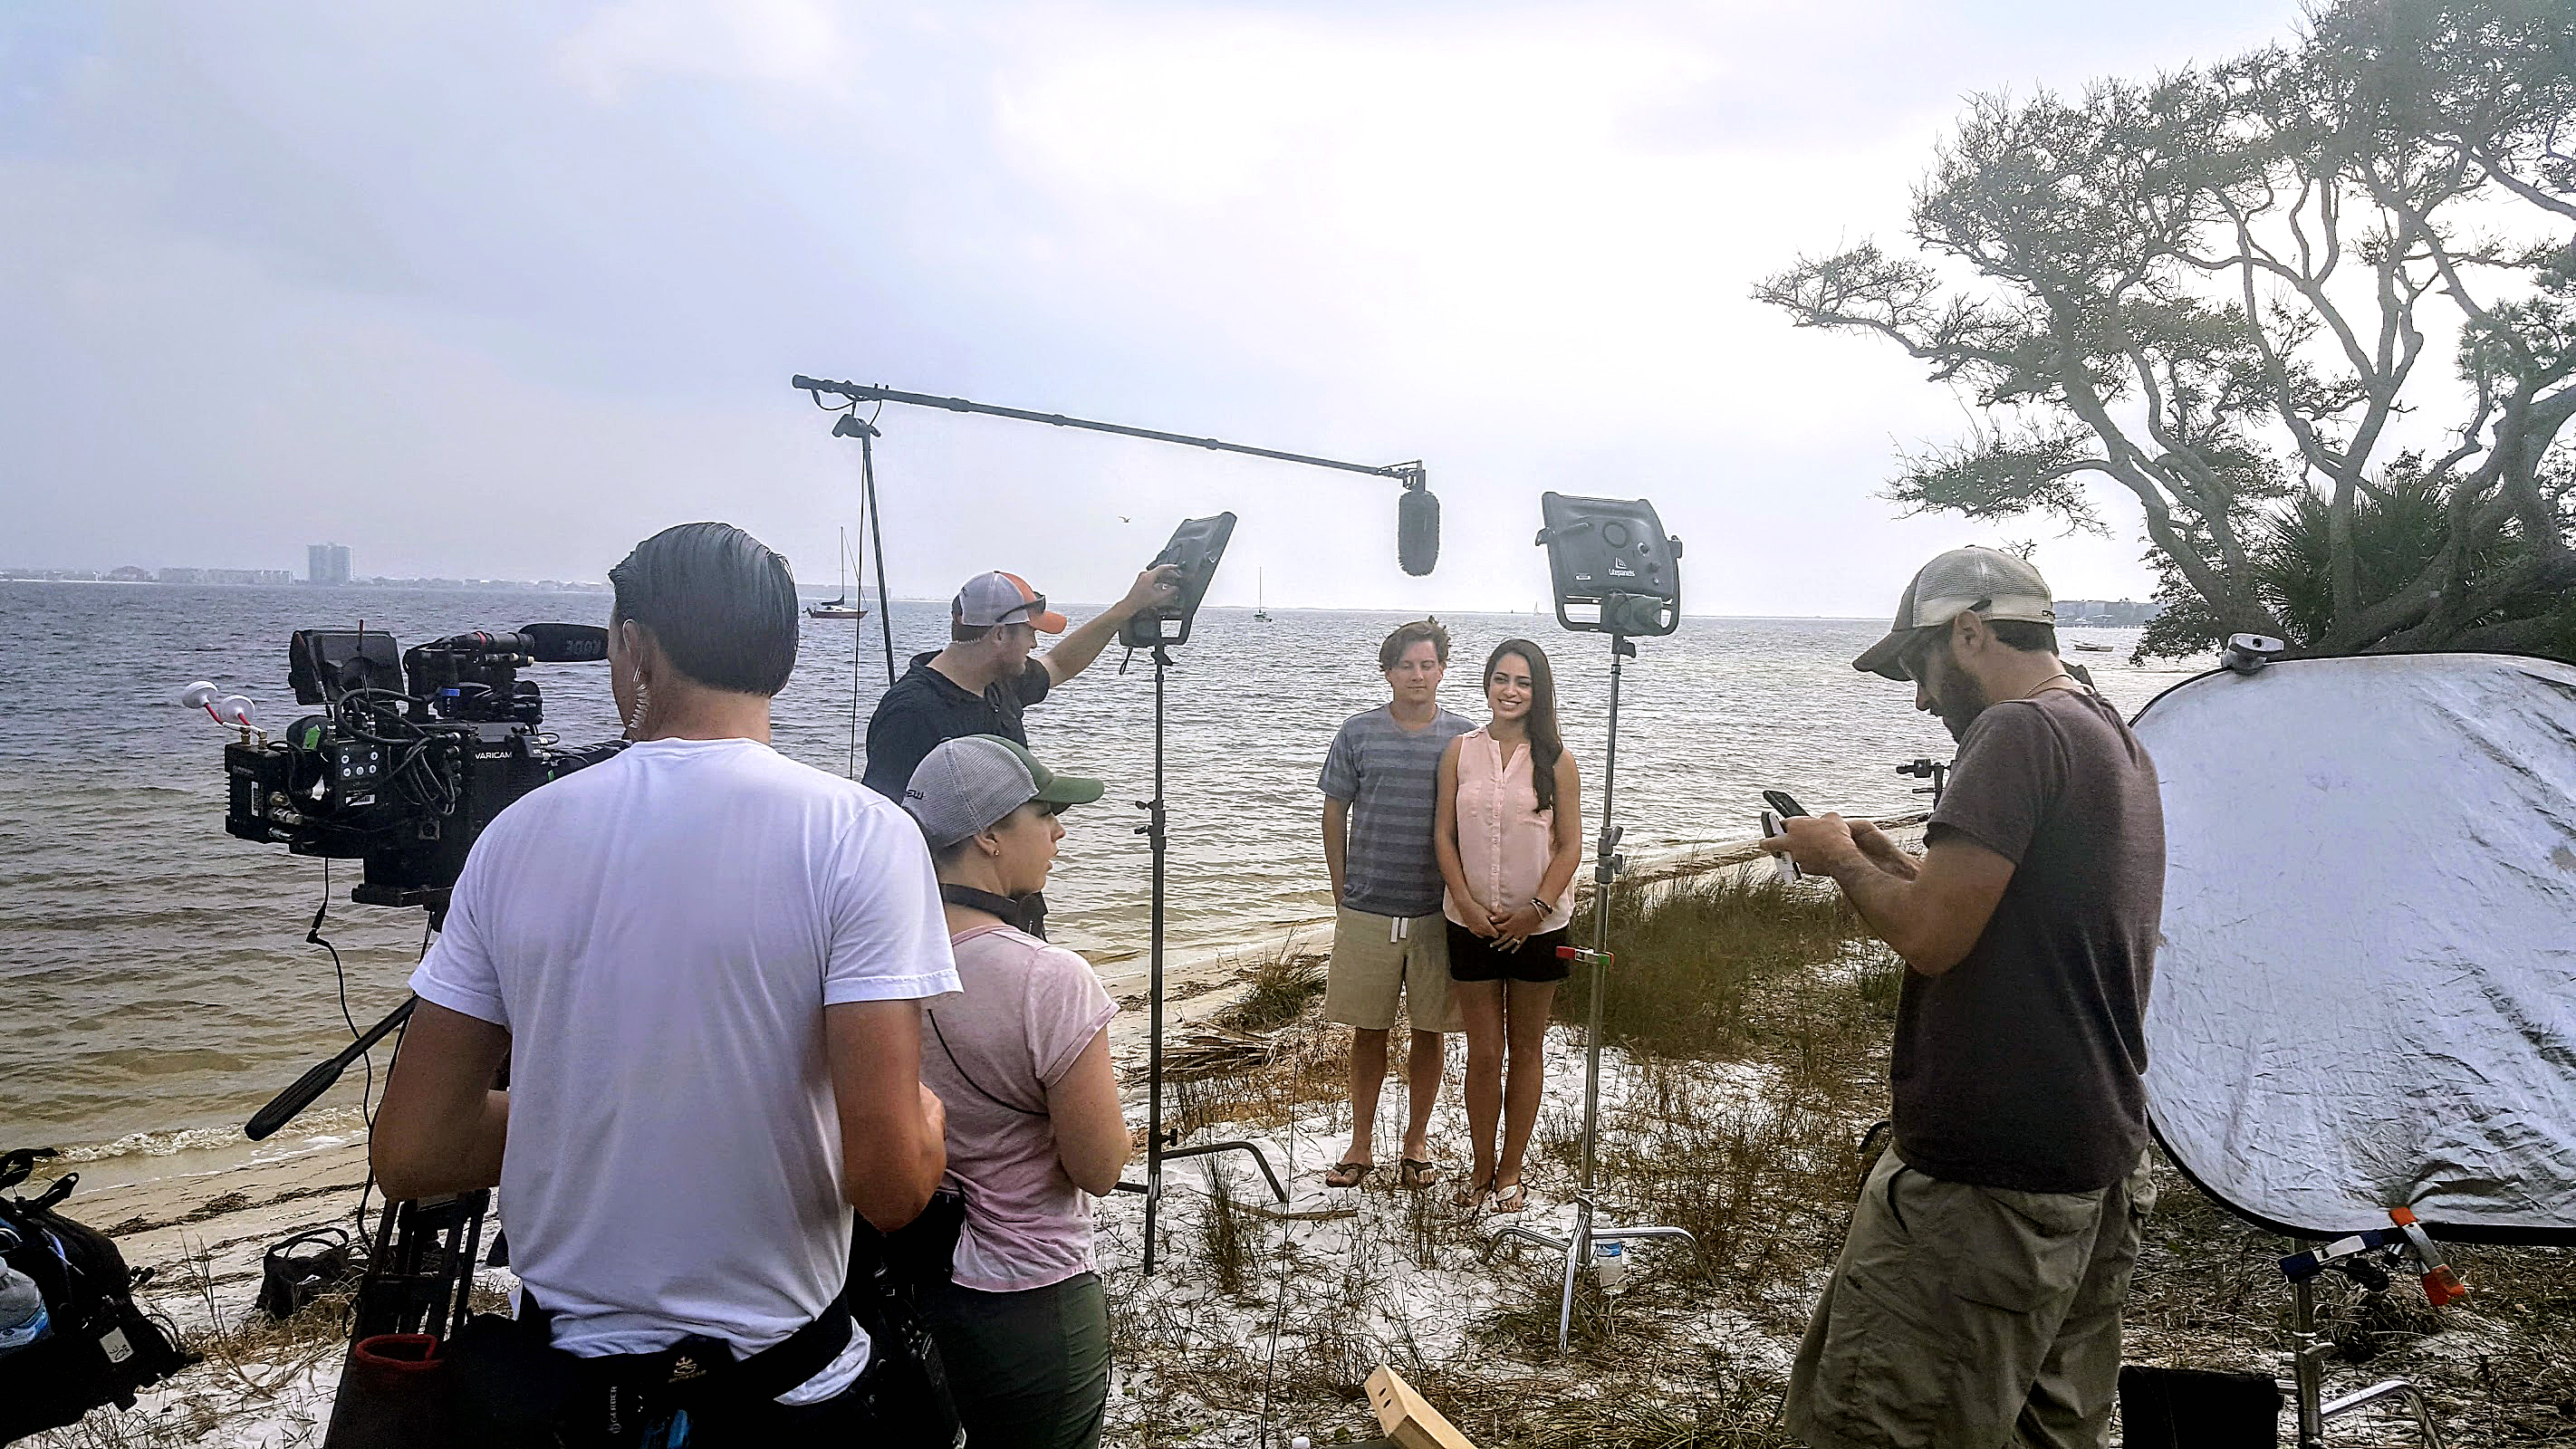 Hgtv teams up with levin rinke realty on beach hunters for Hgtv cast members